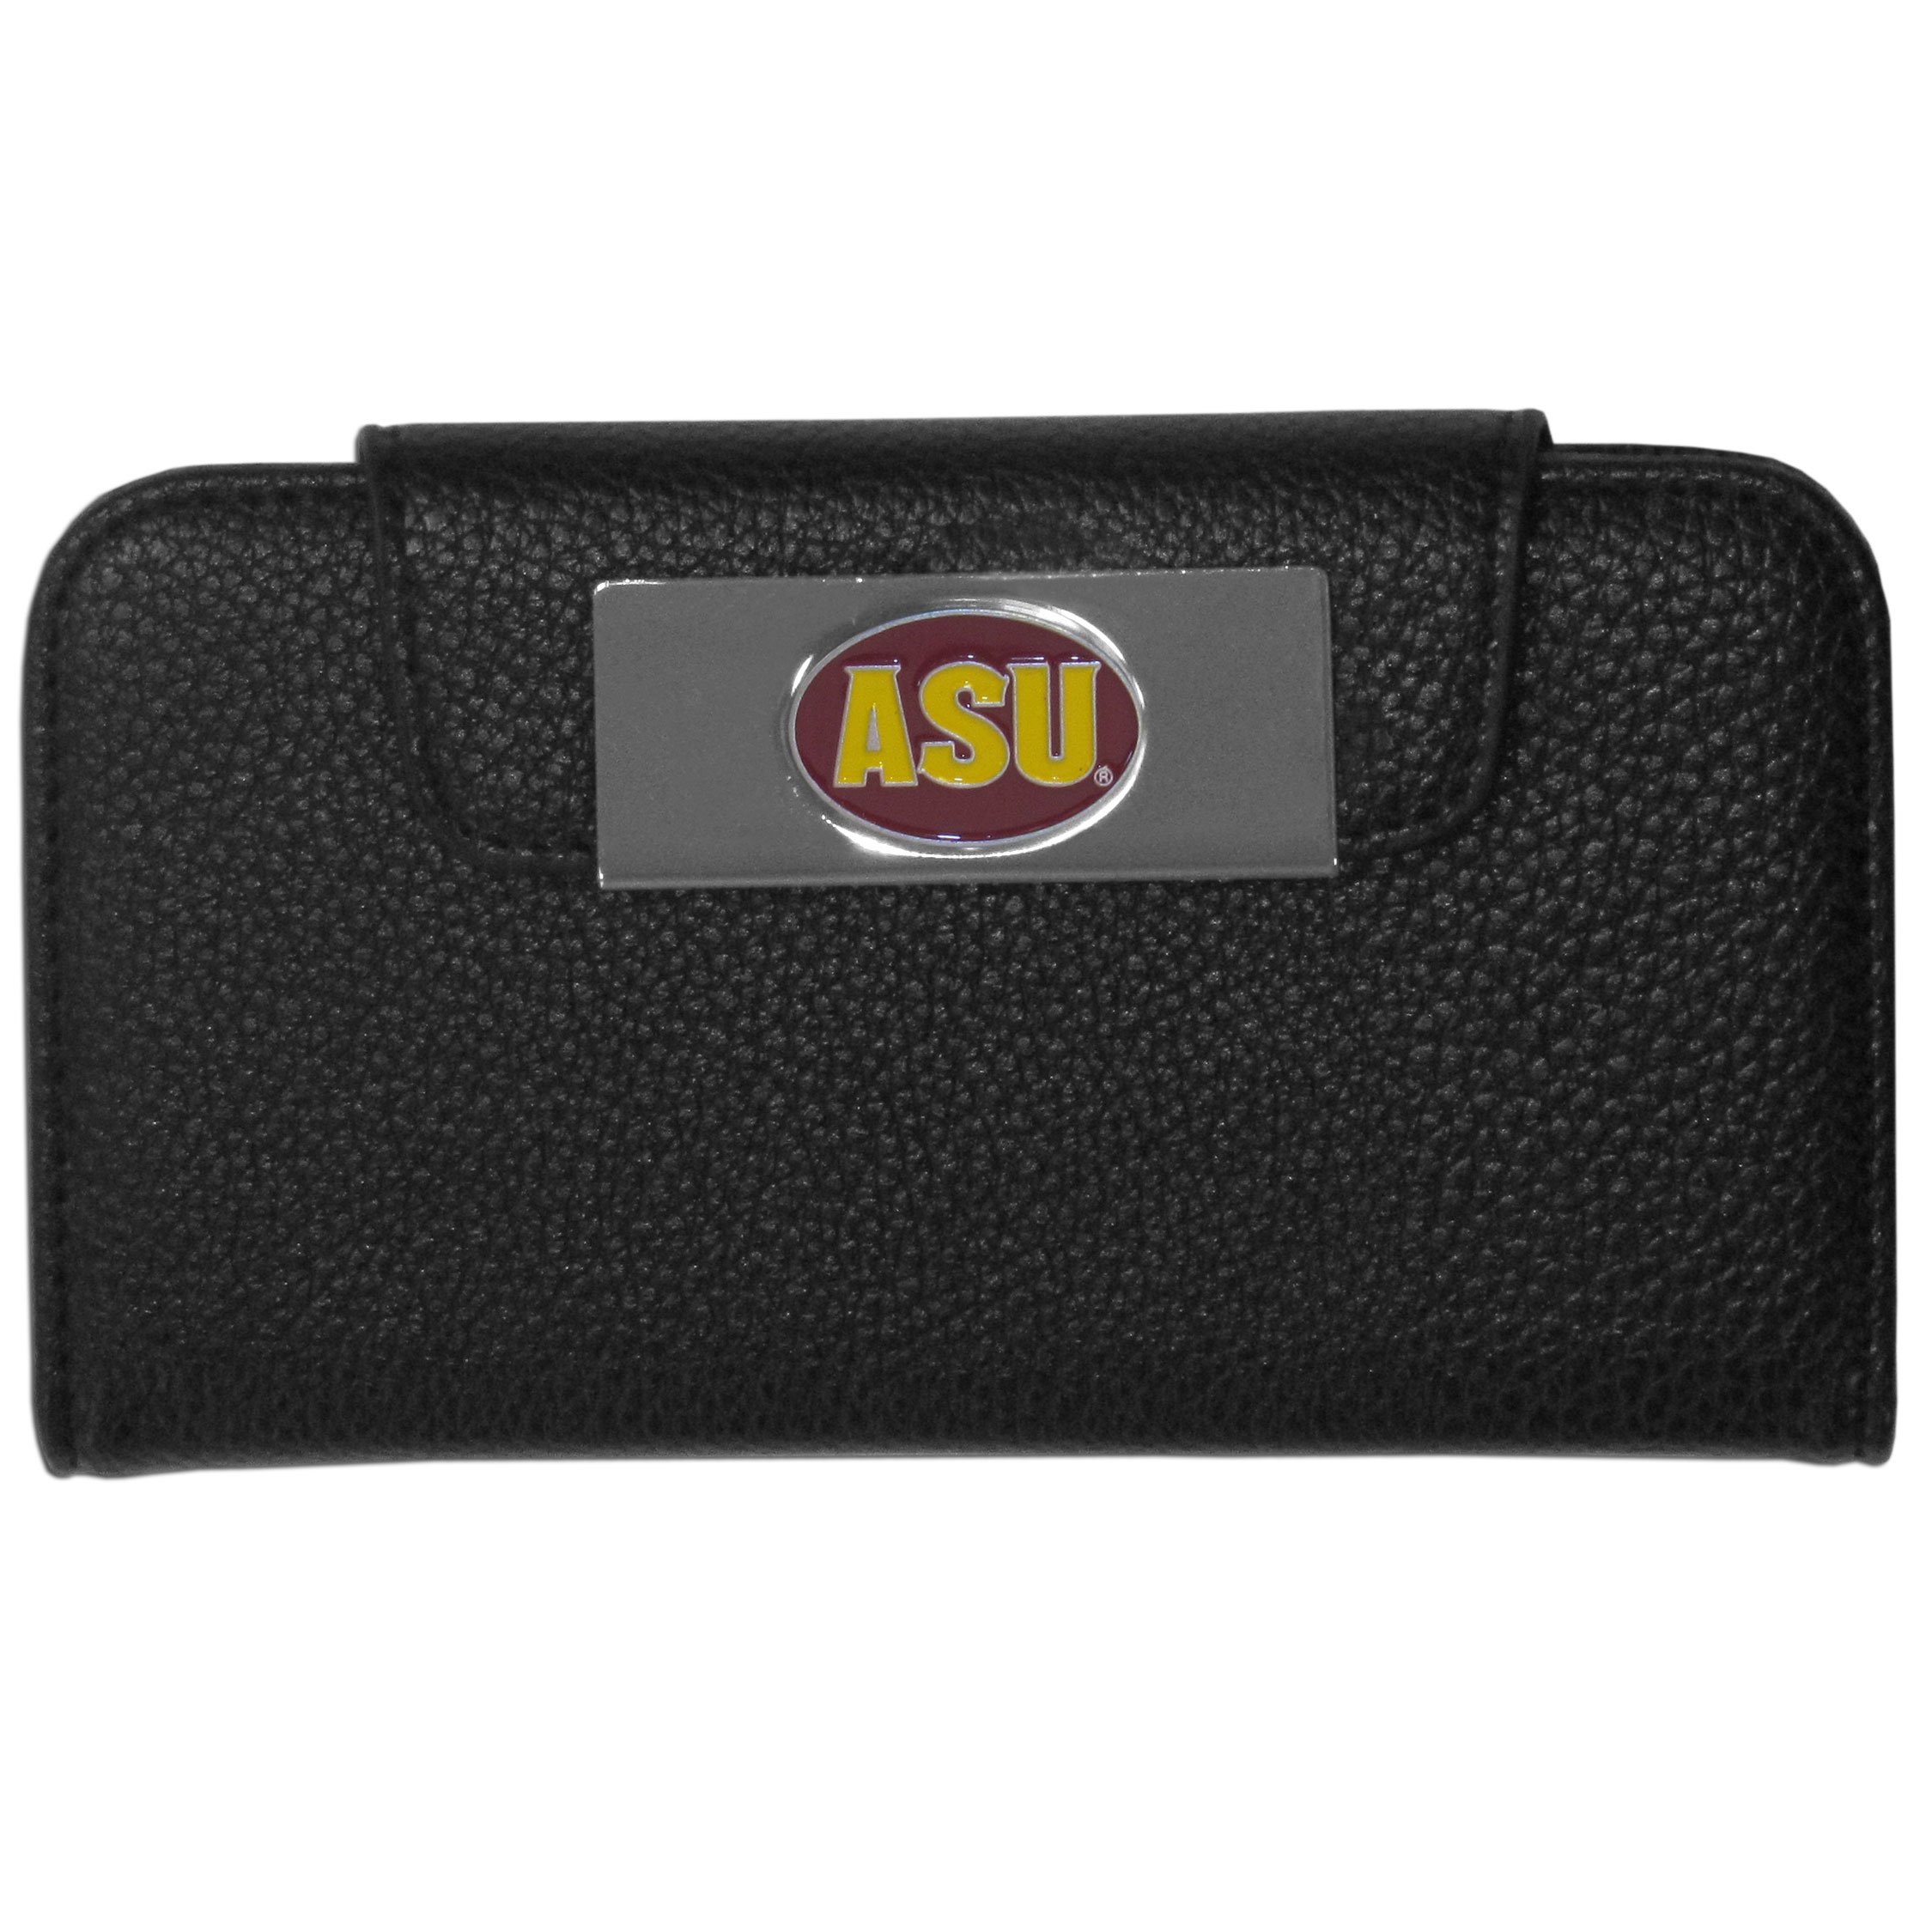 Arizona St. Sun Devils Samsung Galaxy S4 Wallet Case - This new & wildly popular case is ideal for those who like to travel light! The stylish case has an inner hard shell that securely holds your phone while allowing complete access to the phone's functionality. The flip cover has slots for credit cards, business cards and identification. The magnetic flip cover has a metal Arizona St. Sun Devils emblem on a high polish chrome backing. Fits the Samsung Galaxy S4